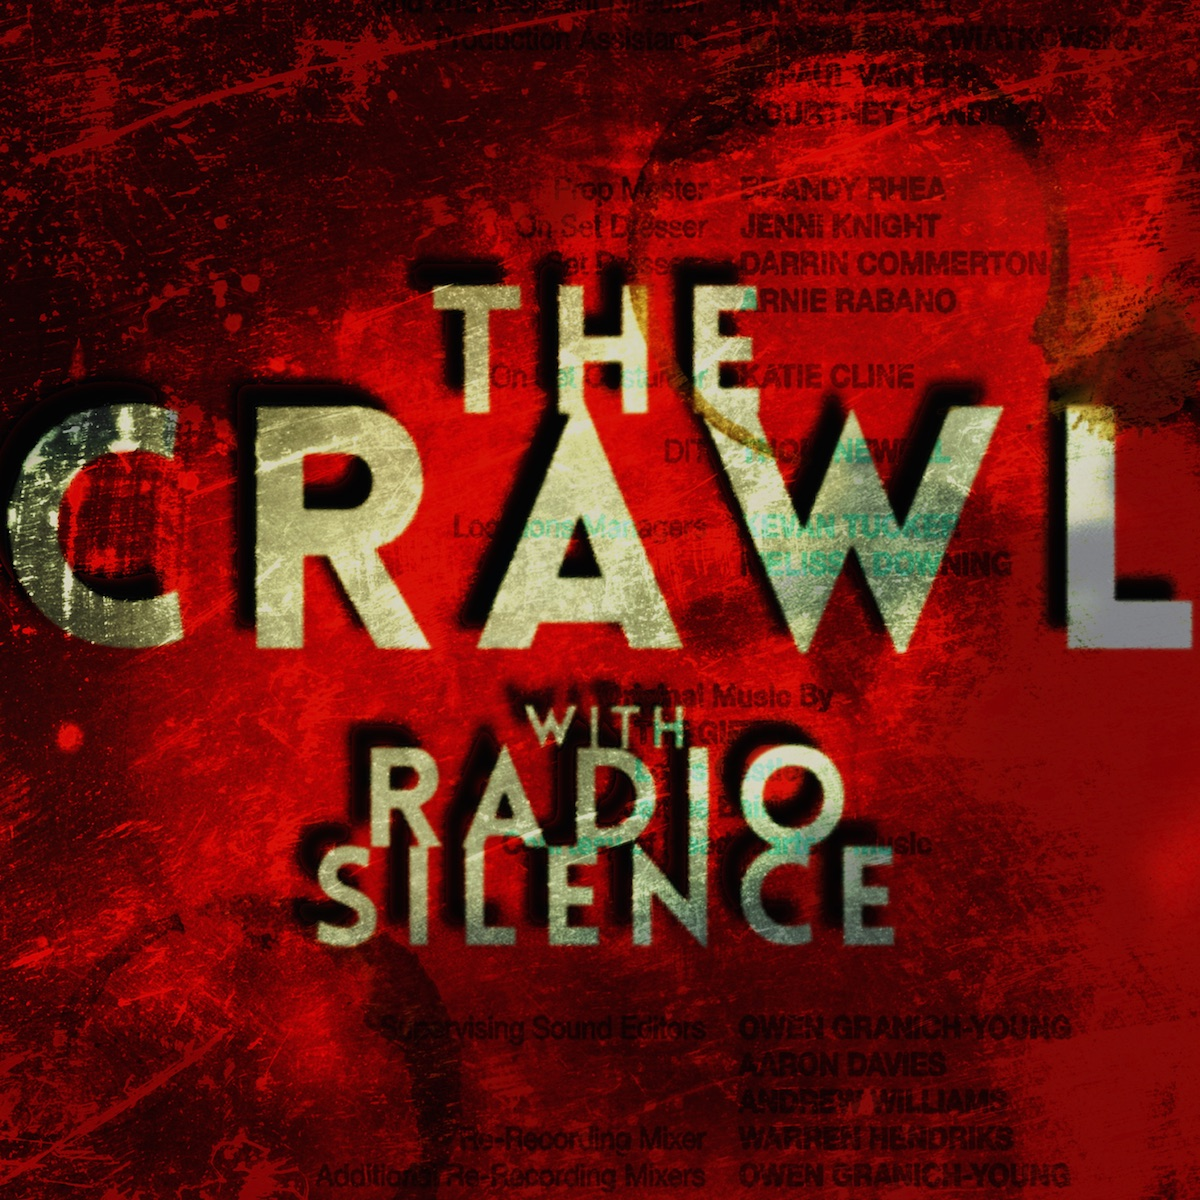 The Crawl Podcast from Radio Silence